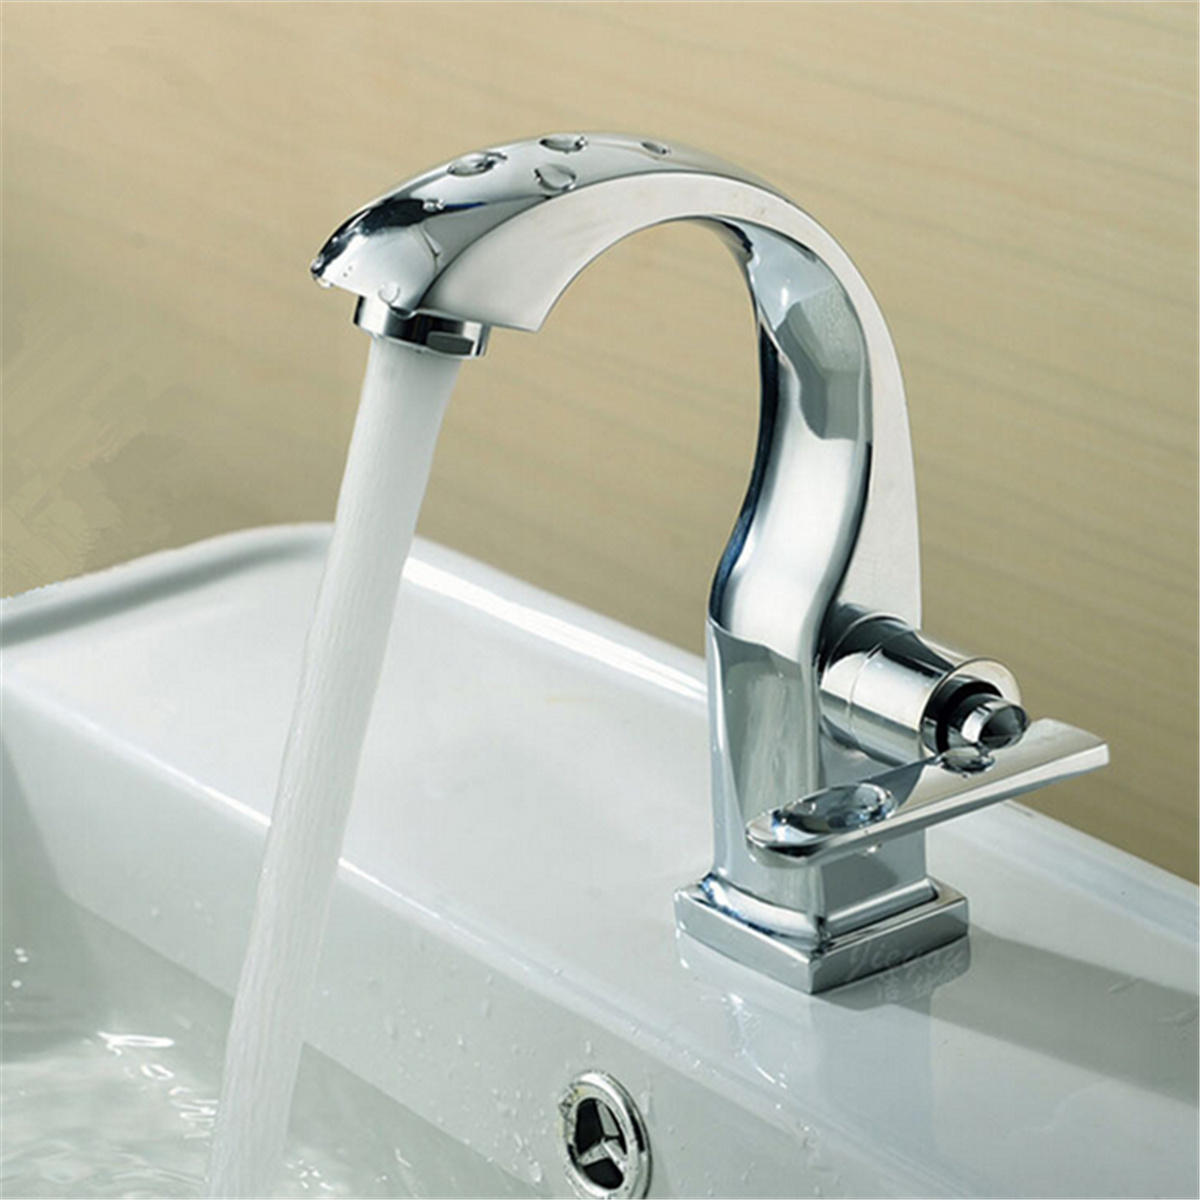 Bathroom Sink Faucets Chrome Finish Single Lever Home Bathroom Basin Faucet Spout Sink Cold Water Tap